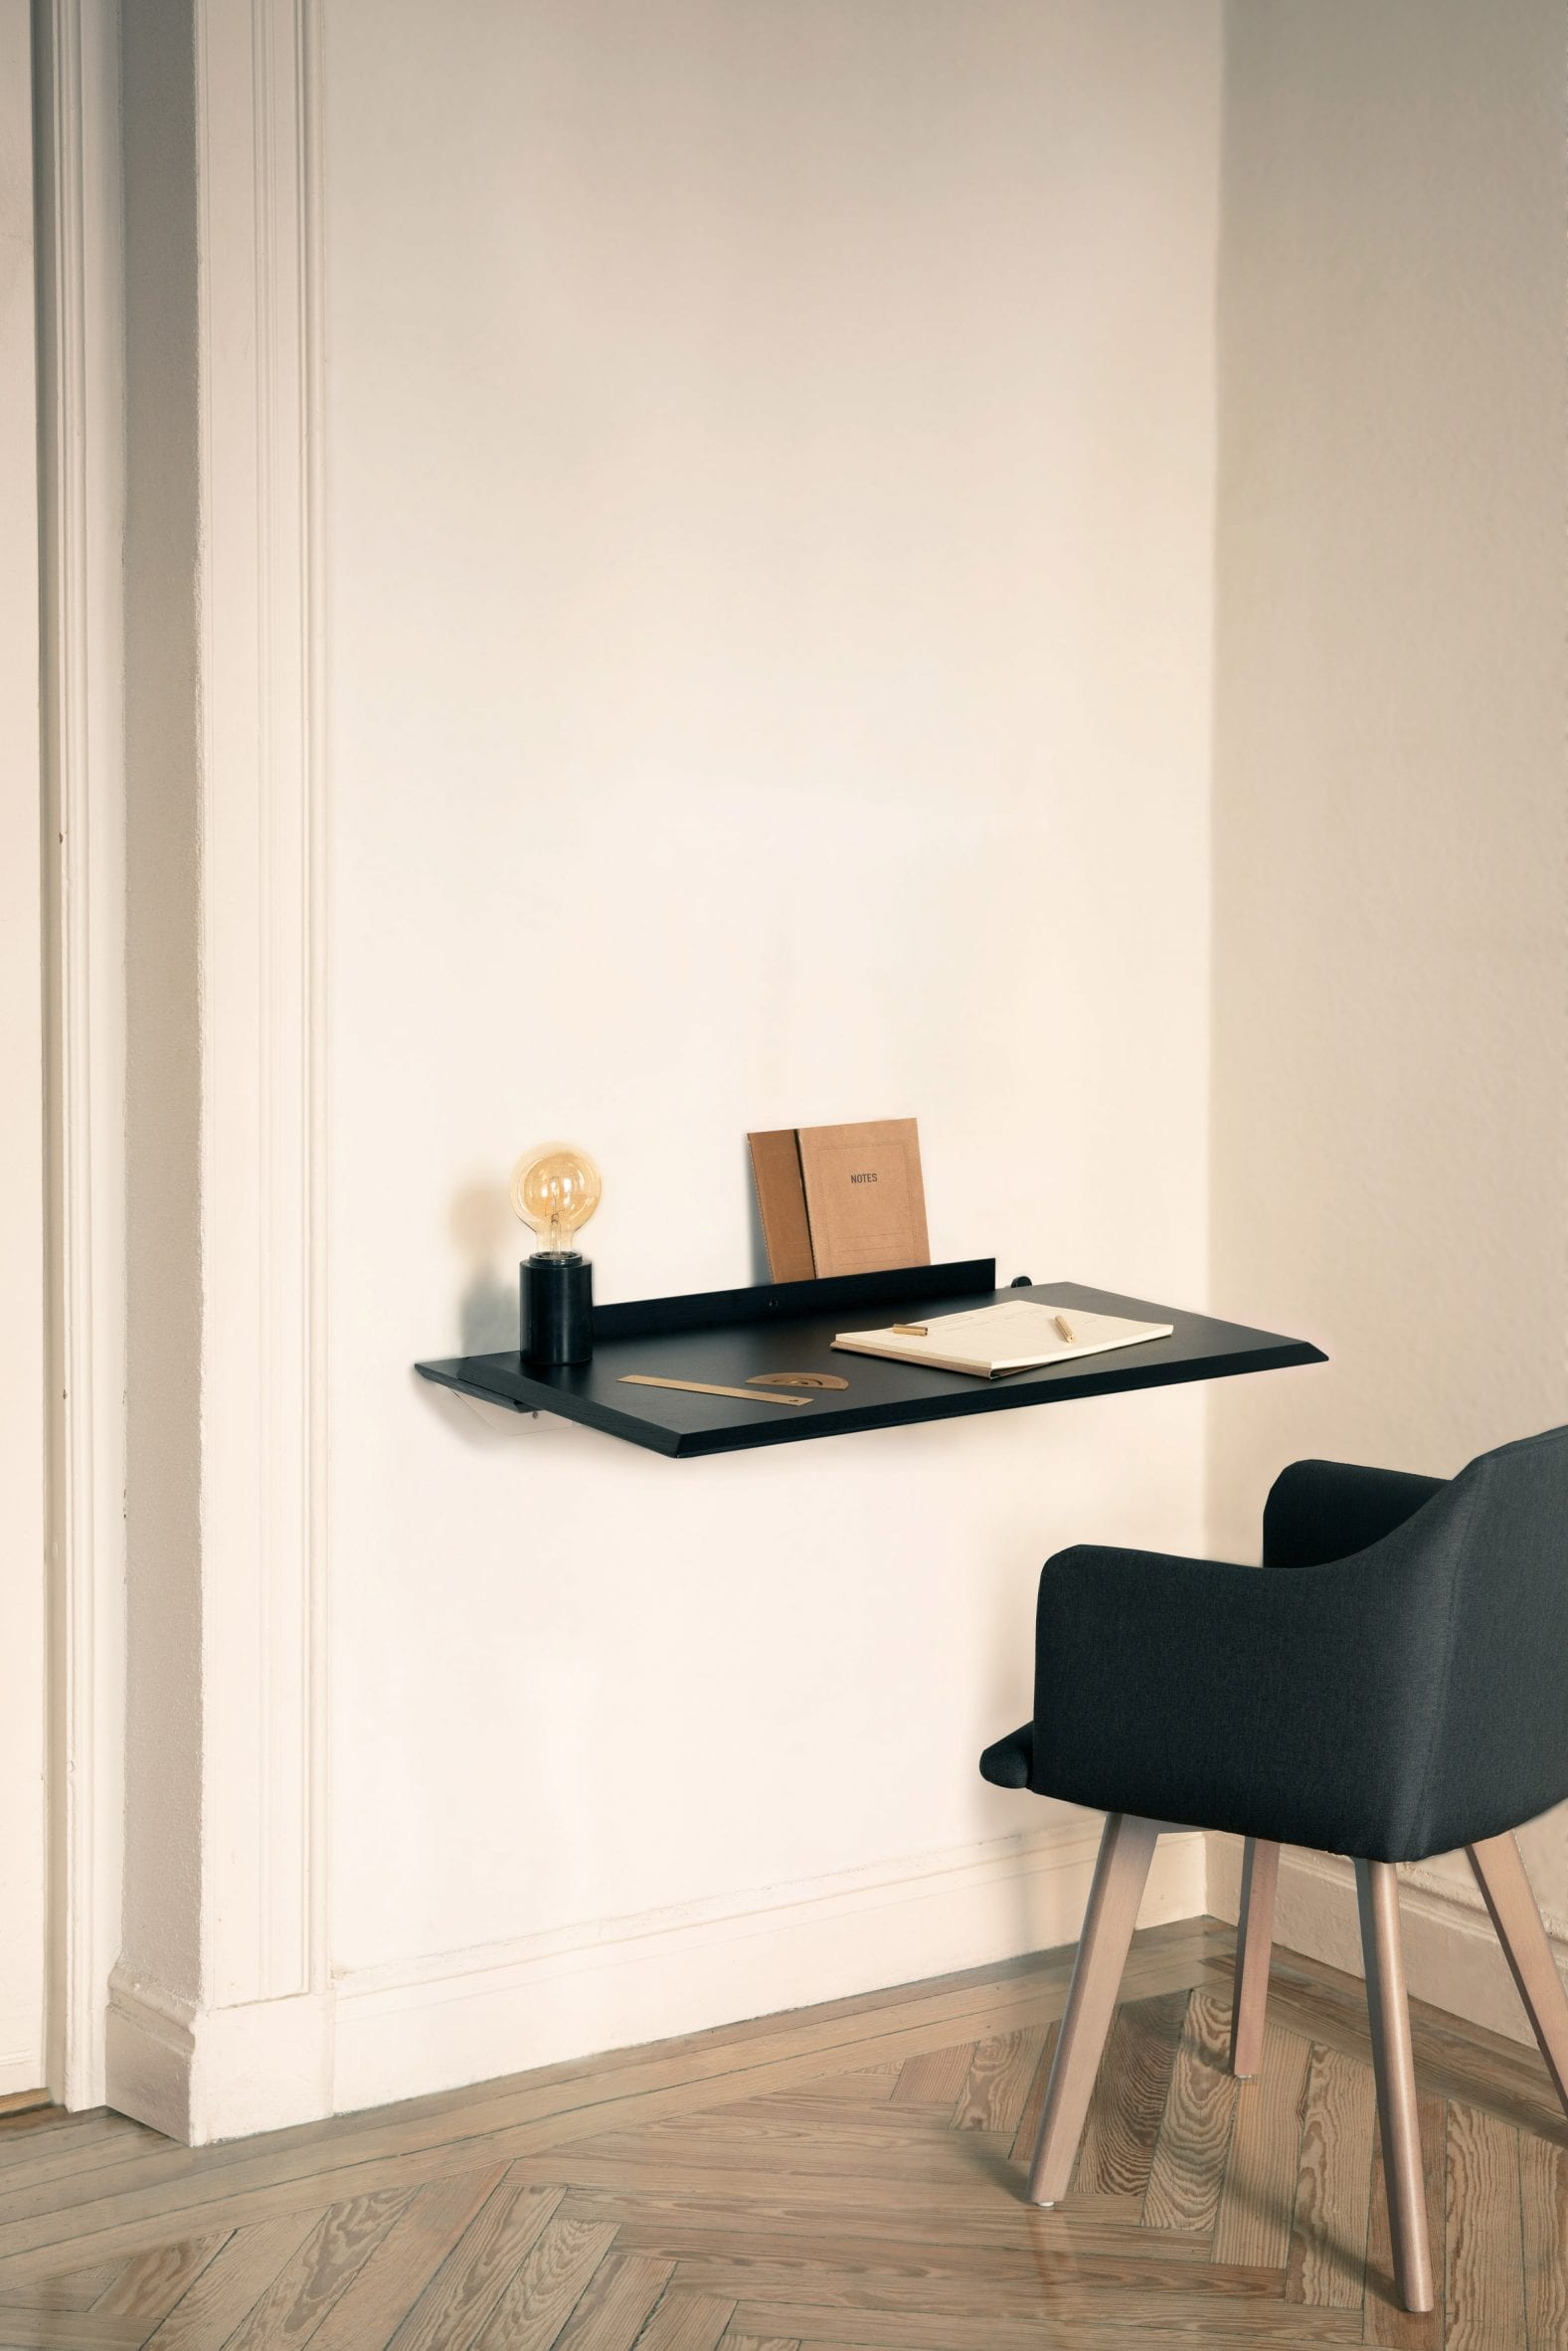 Black version of the Alada desk folded out with stationary and lamp on top